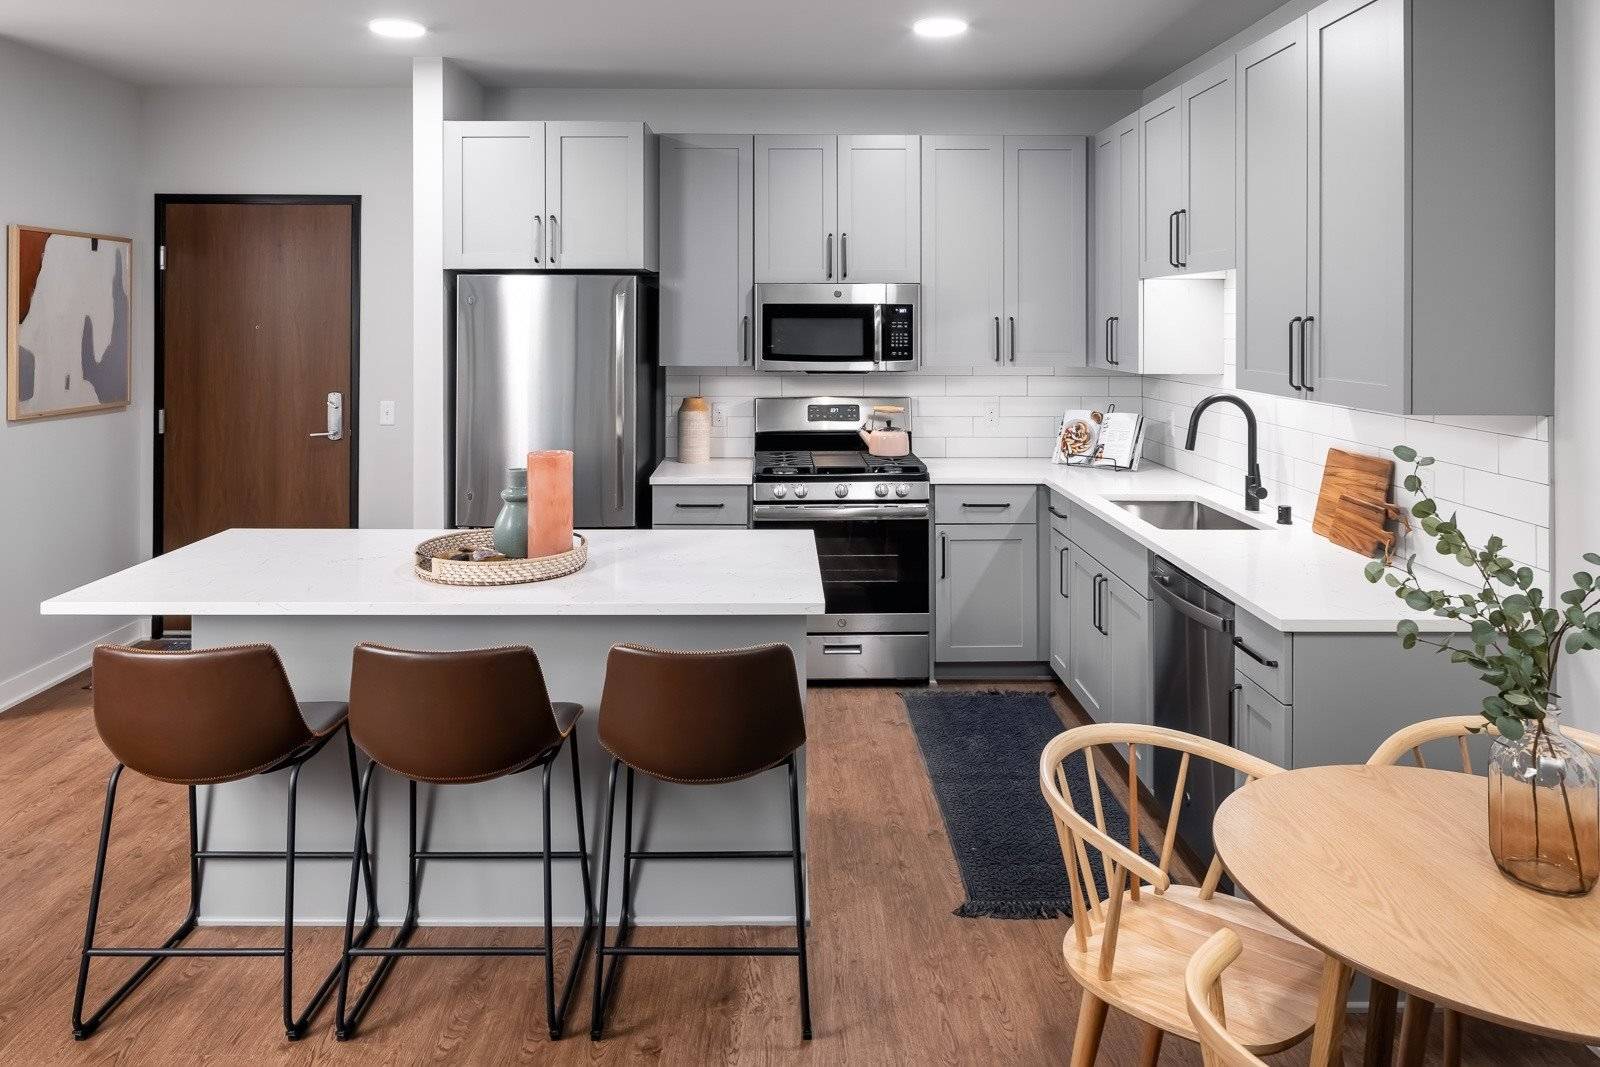 Eat-in kitchen with stainless steel appliances and backsplash